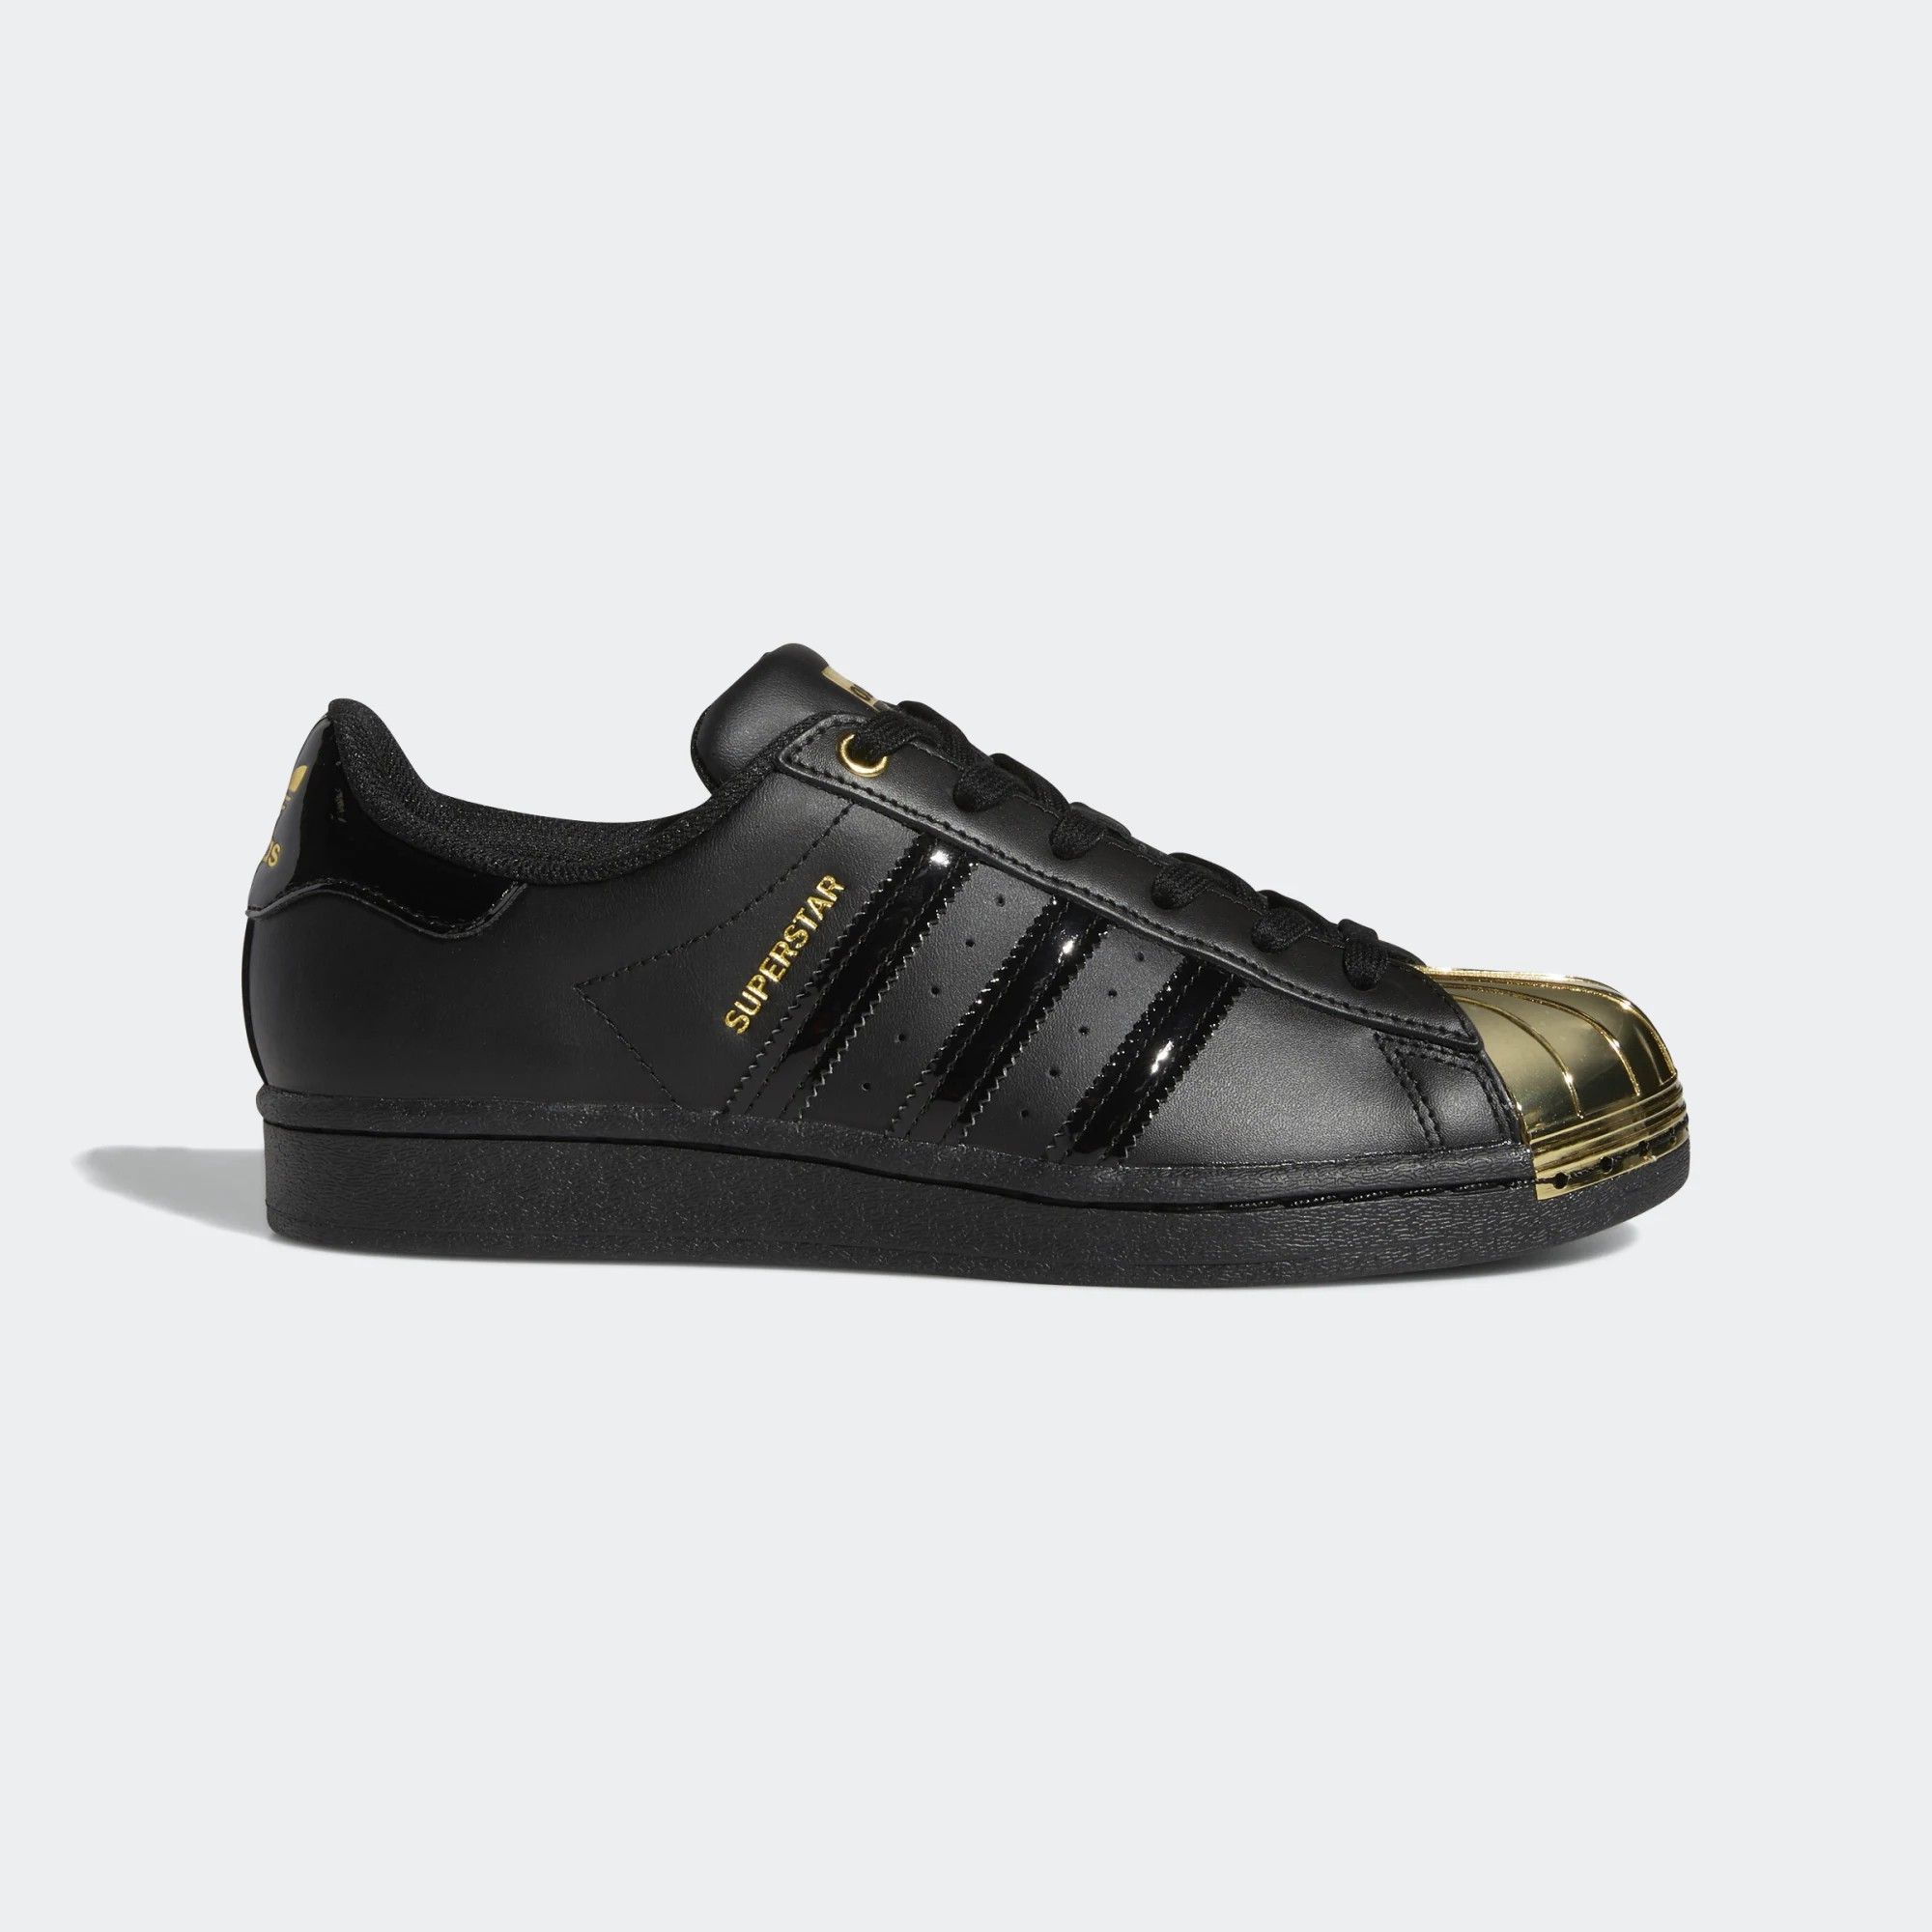 Wmns Superstar Metal Toe 'Black Gold Metallic' FV3305